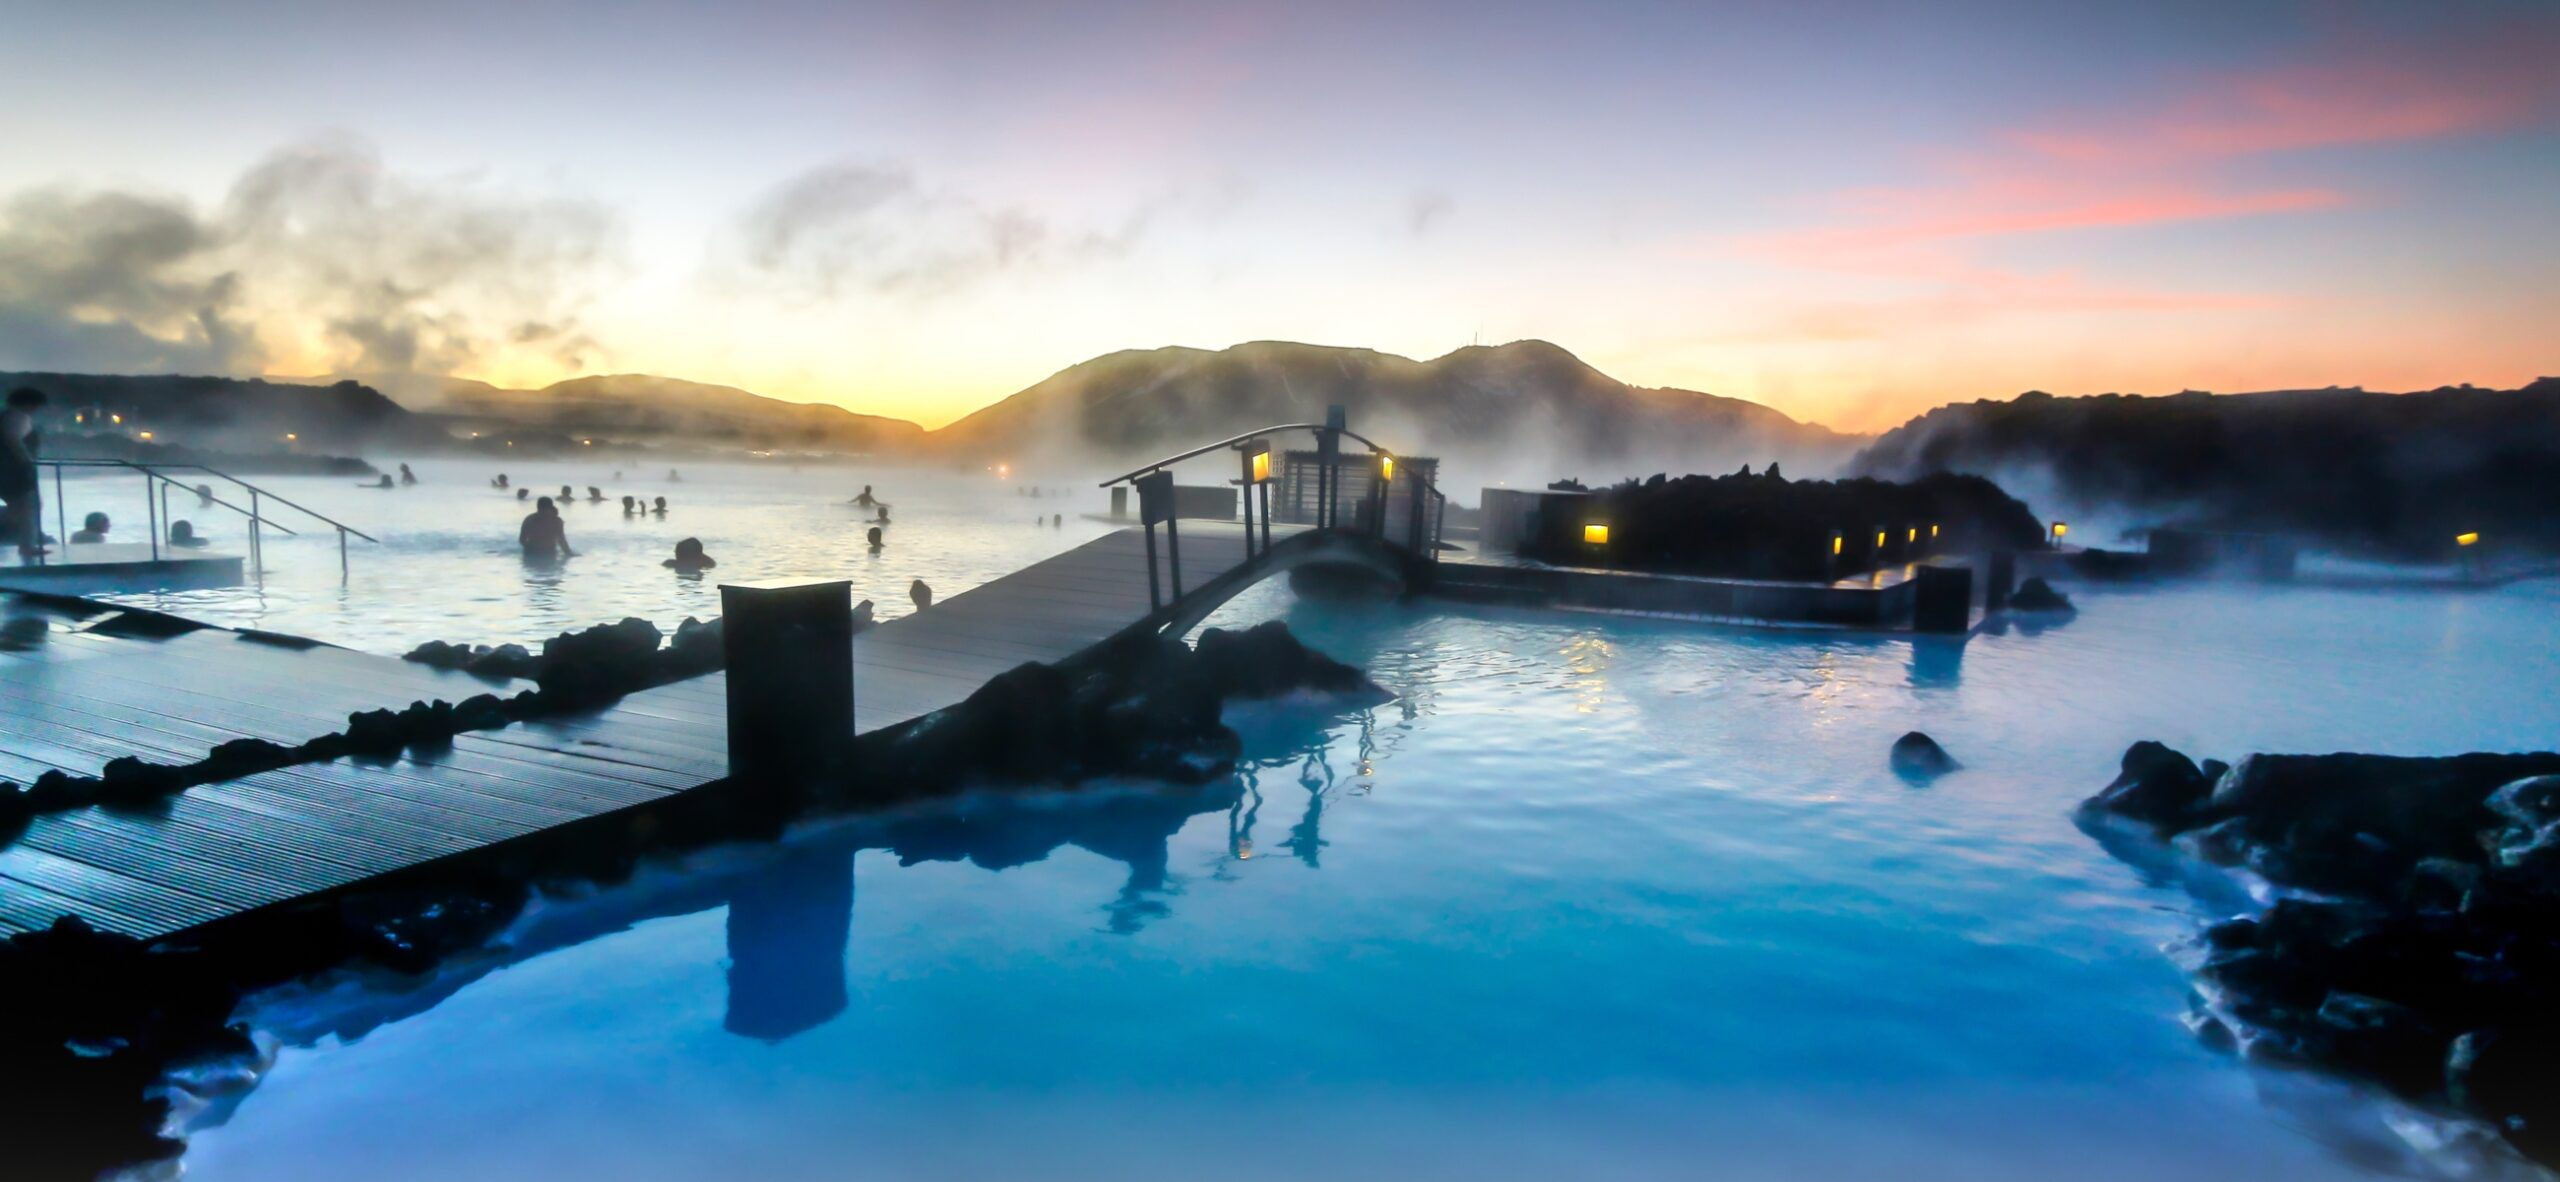 Into the Blue Lagoon - Reykjavik's-Hot-Spring-Attraction